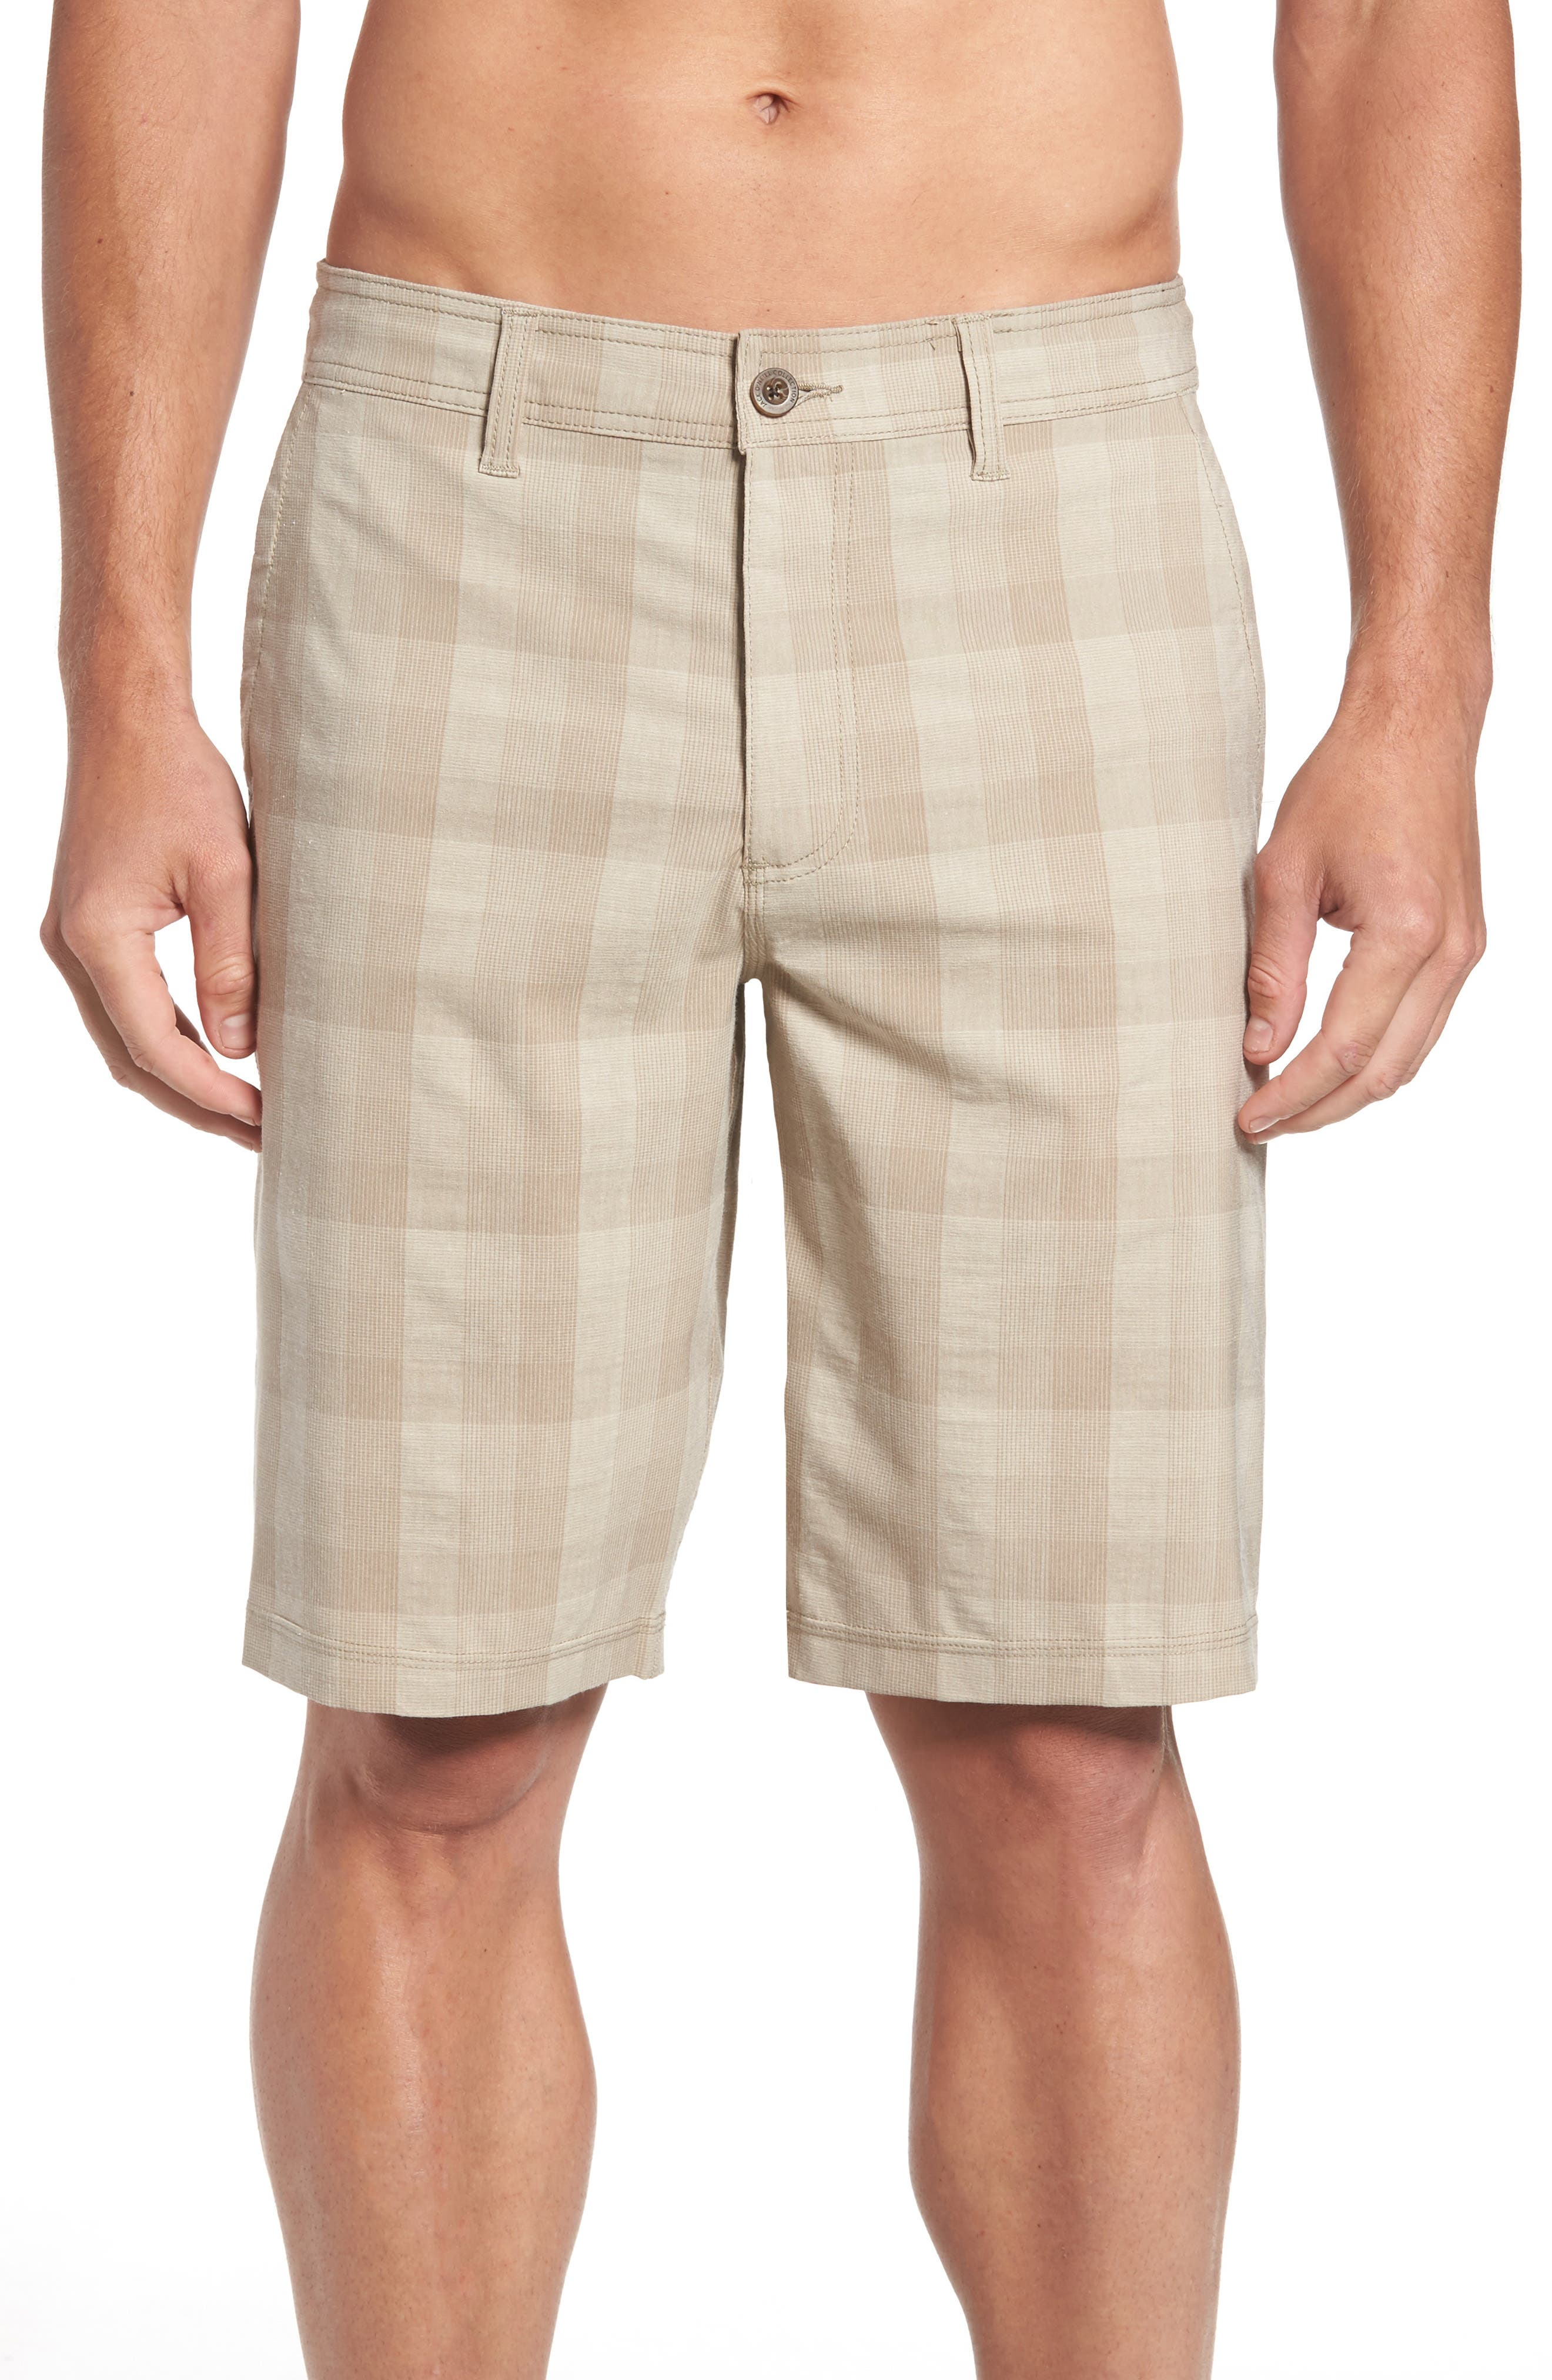 Rally Stretch Board Shorts,                             Alternate thumbnail 4, color,                             071